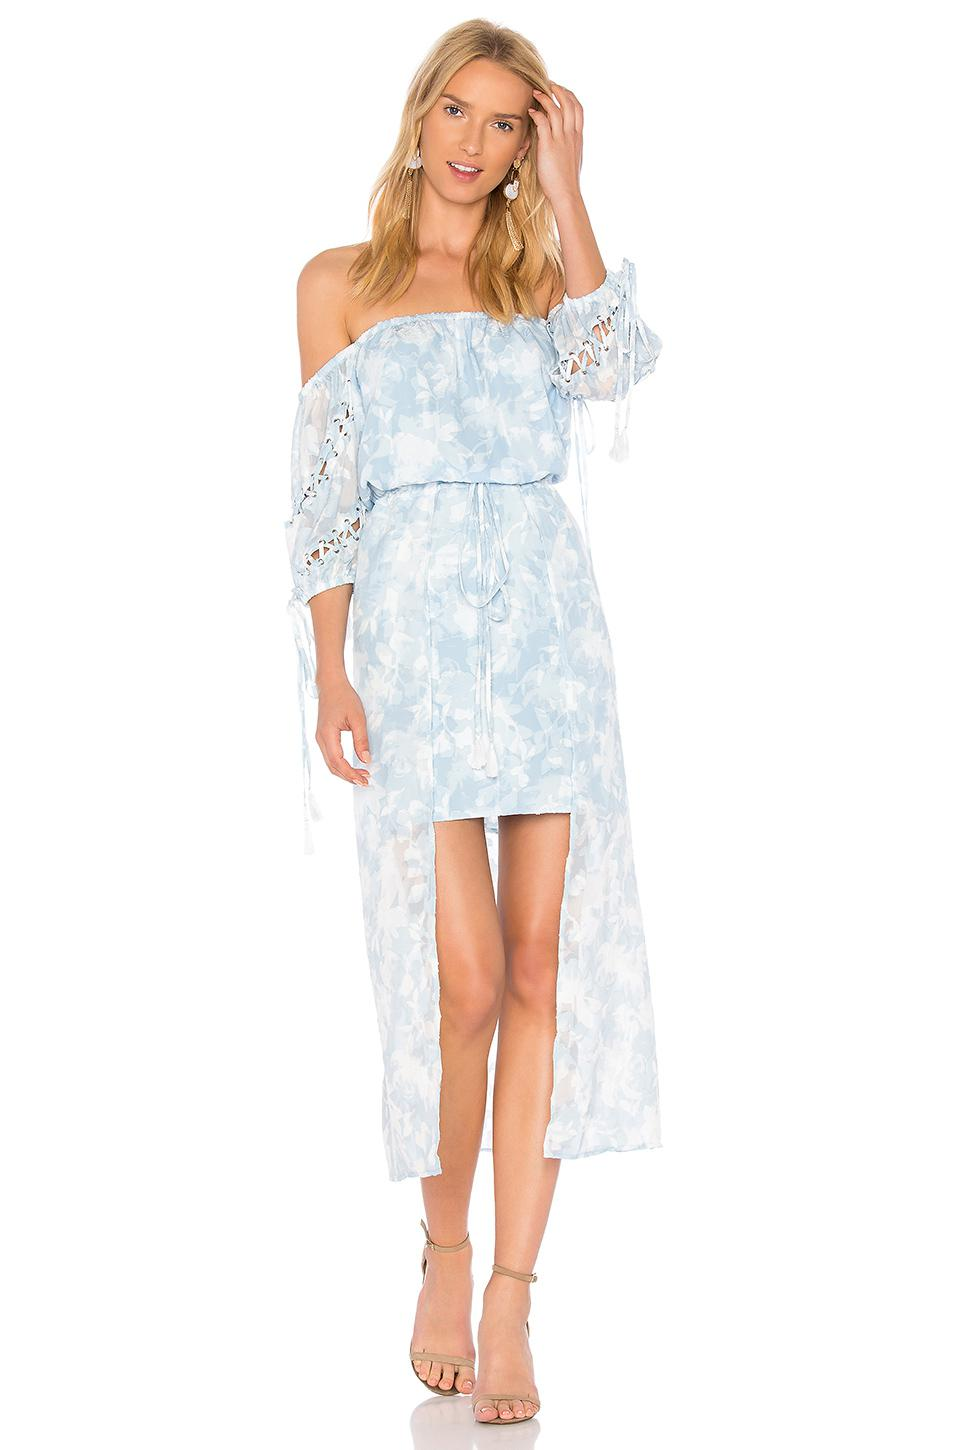 6fa4e6e6b635 Lyst - We Are Kindred Morning Frost Off Shoulder Dress in Blue